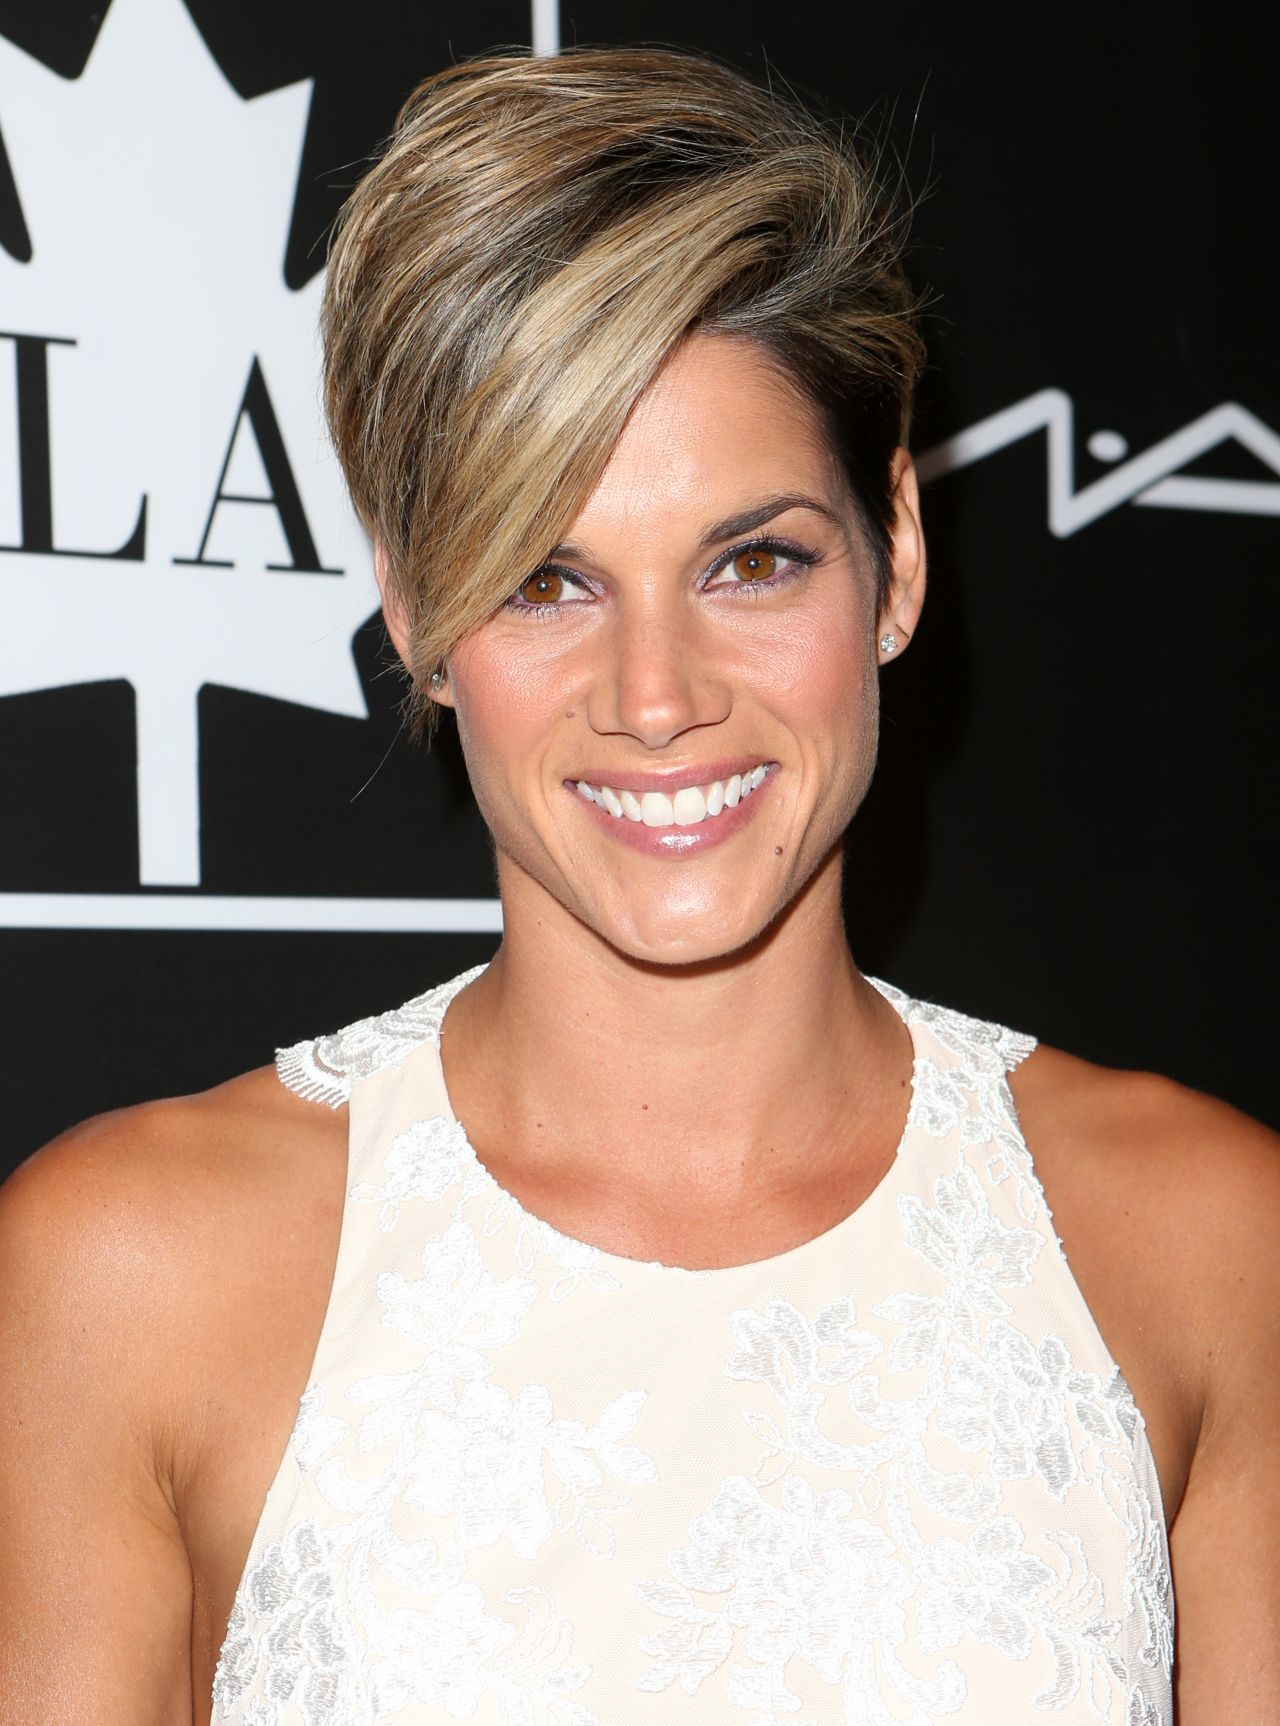 Missy Peregrym Latest Photos Celebmafia